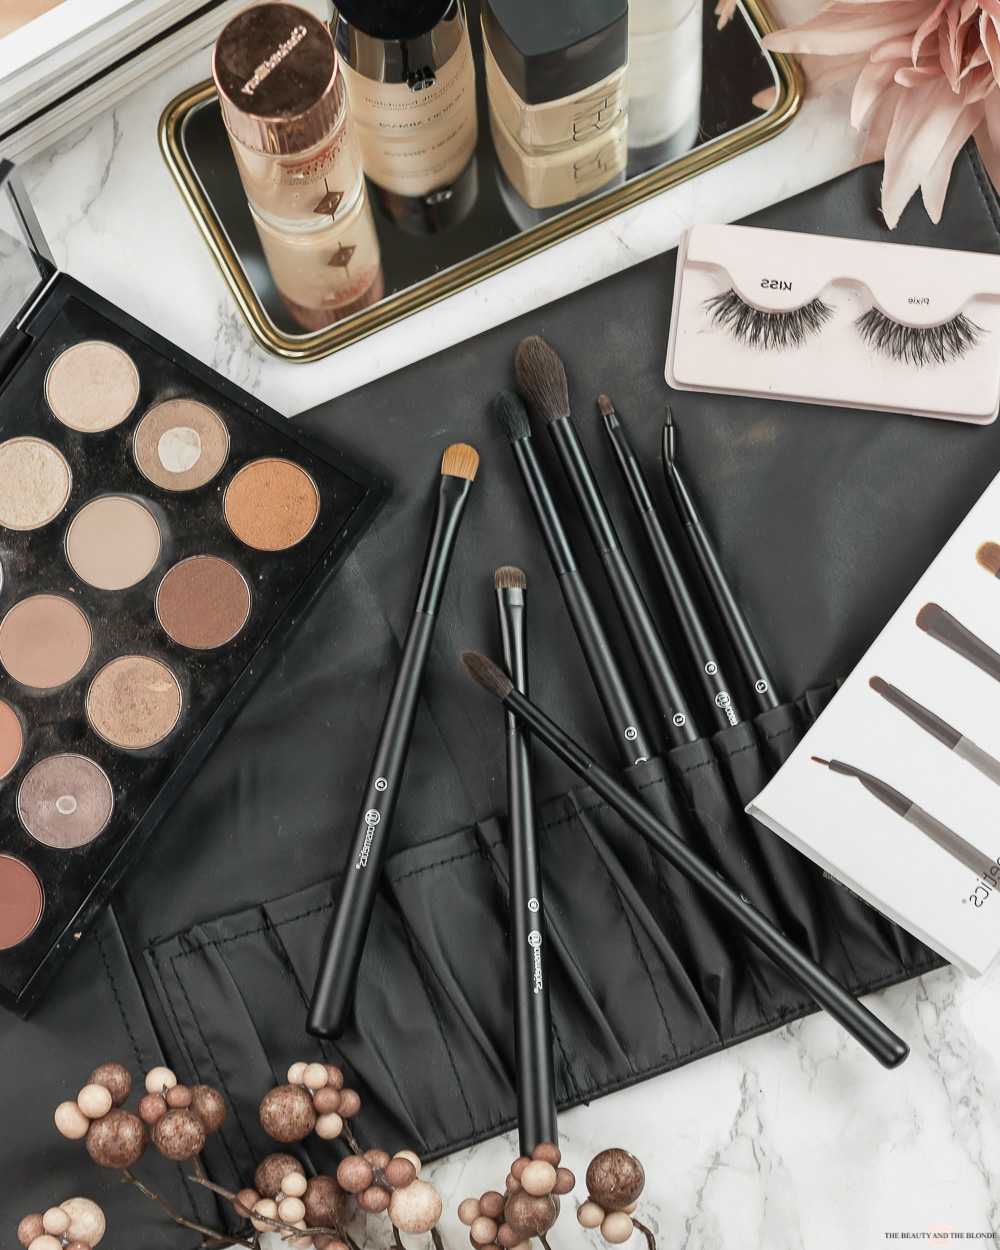 bh Cosmetics Smokey Eye Essential Pinsel Set Review